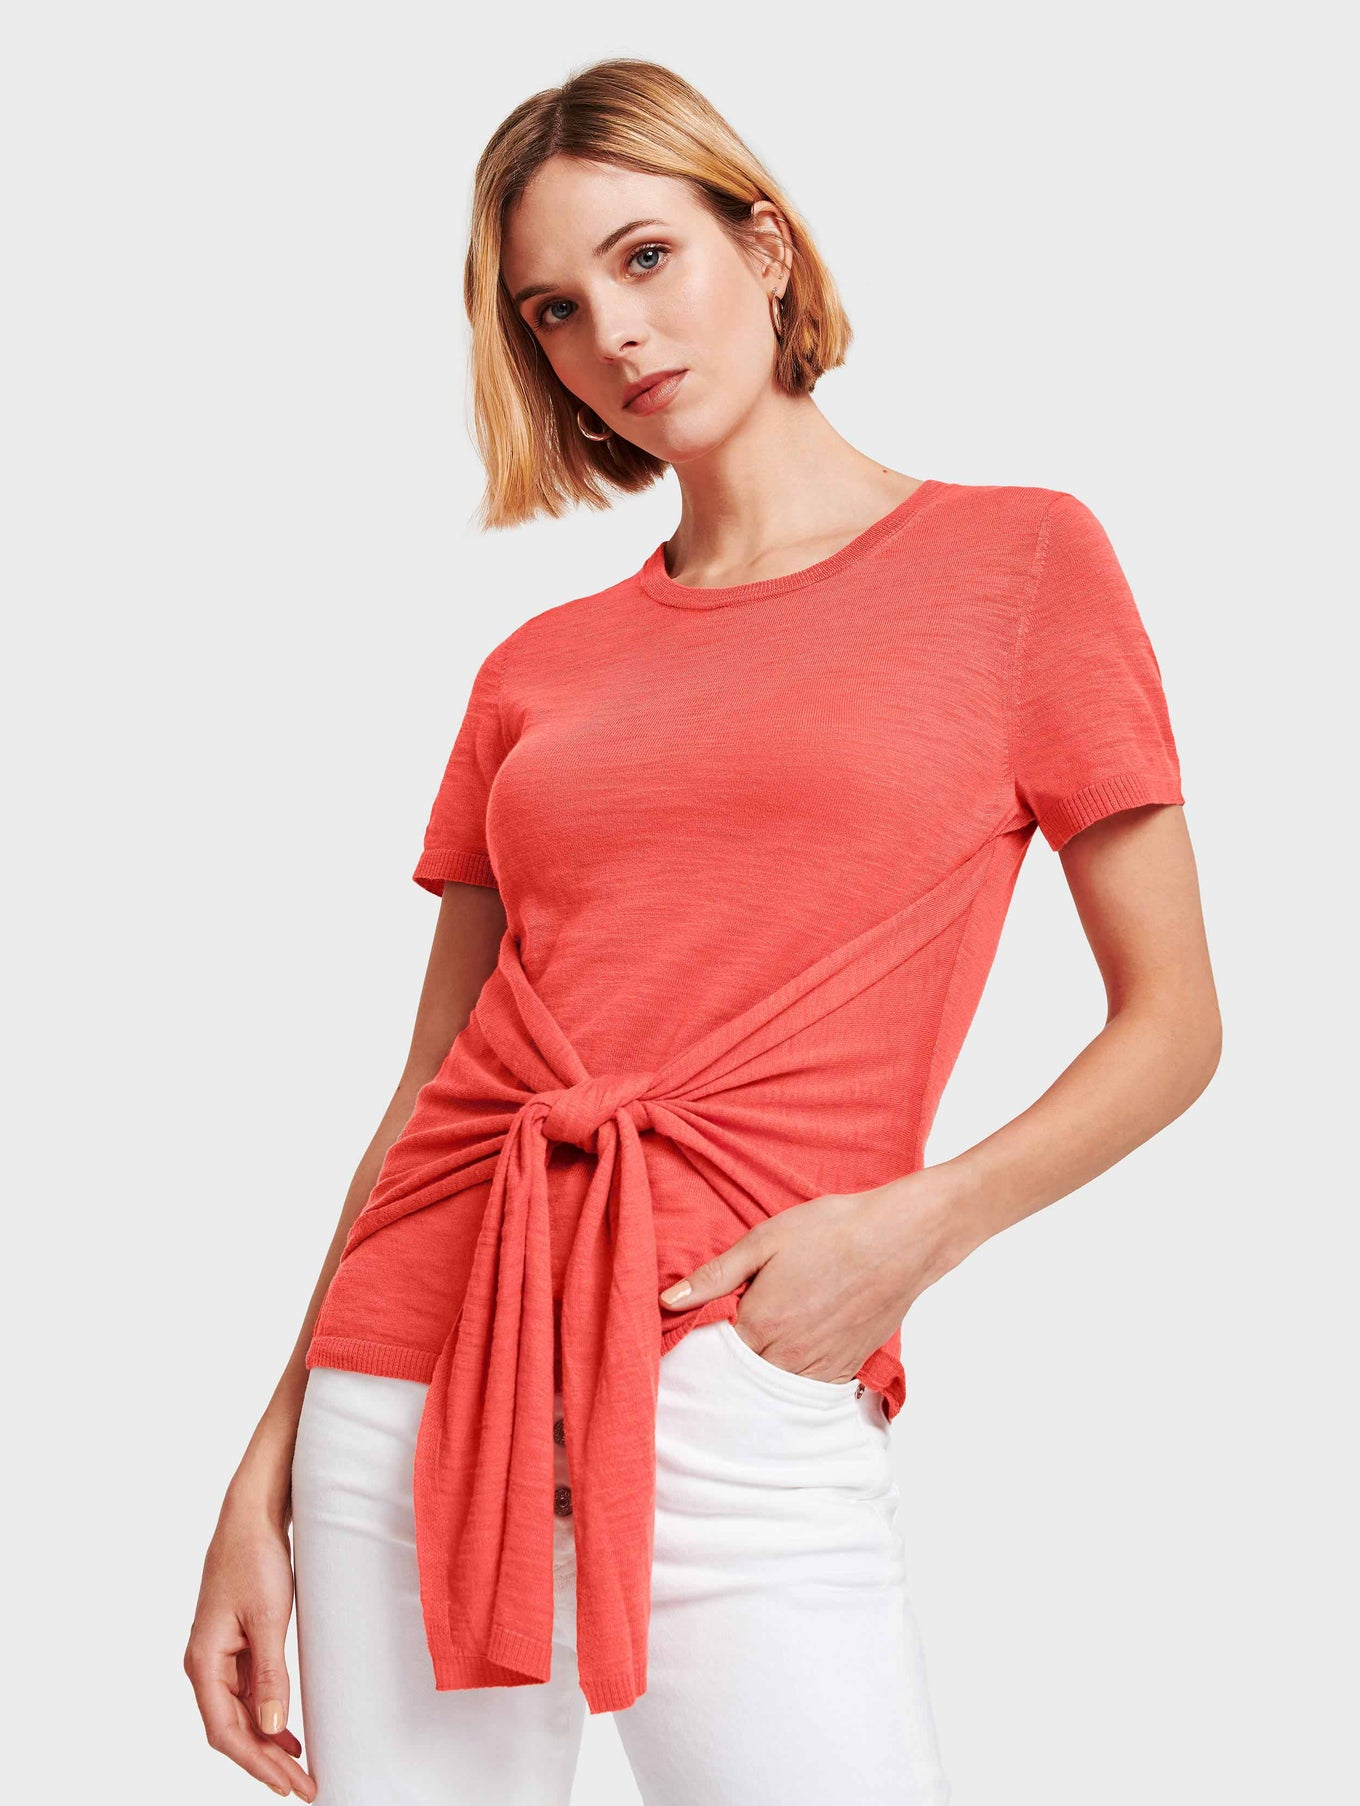 Cotton Slub Tie Front Tee - Rose - Image 1